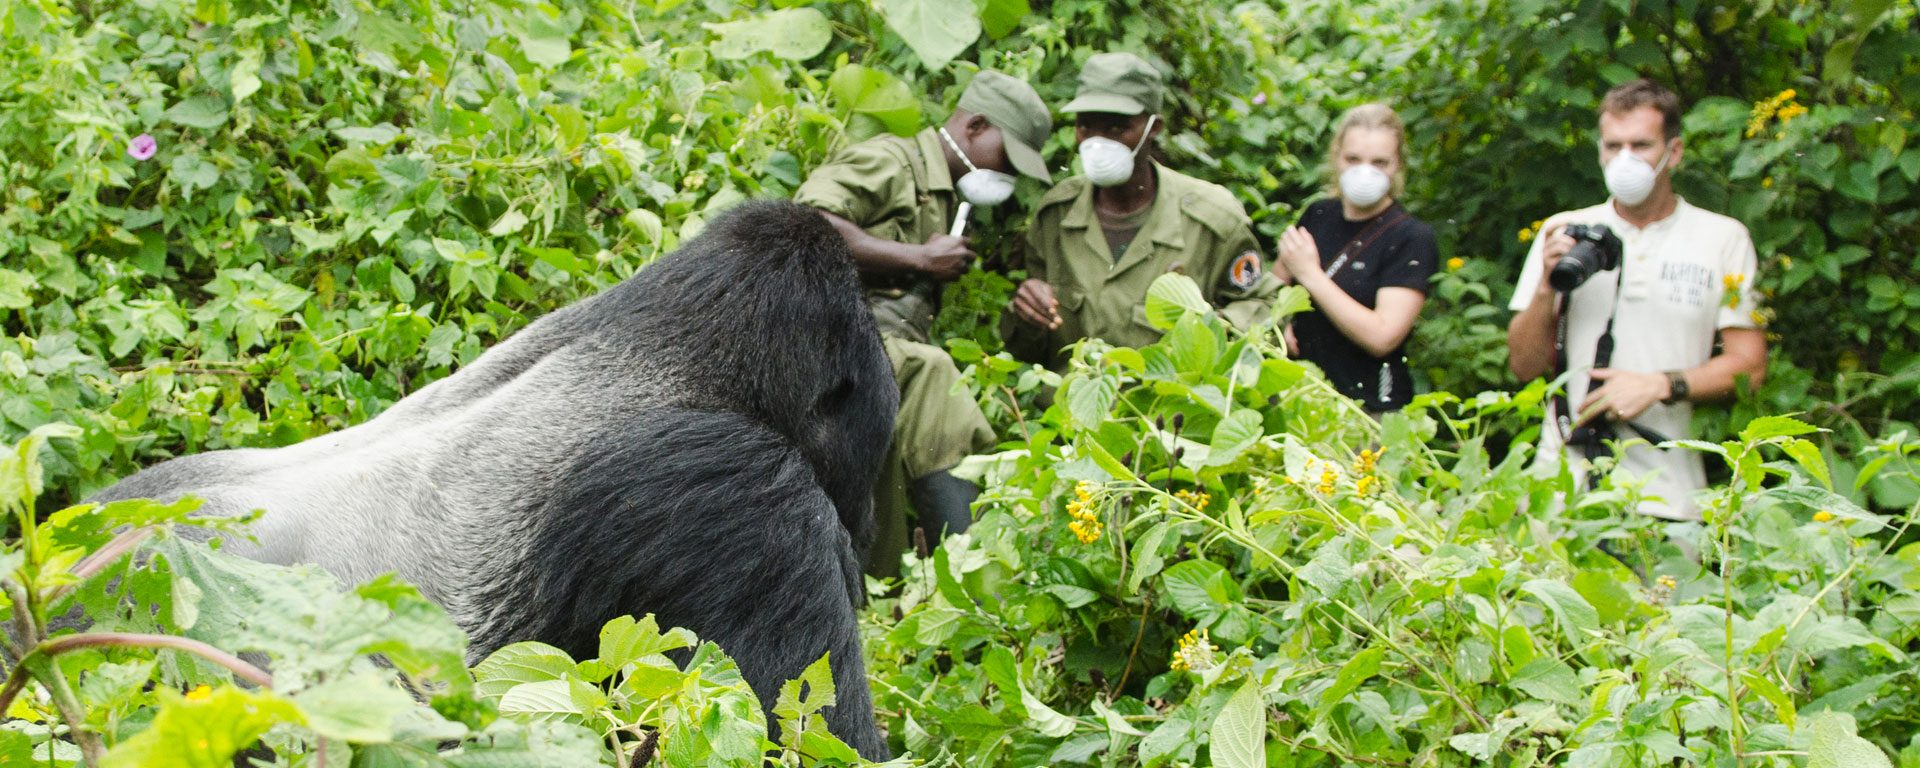 Mountain gorilla and trekkers in Virunga National Park, DRC